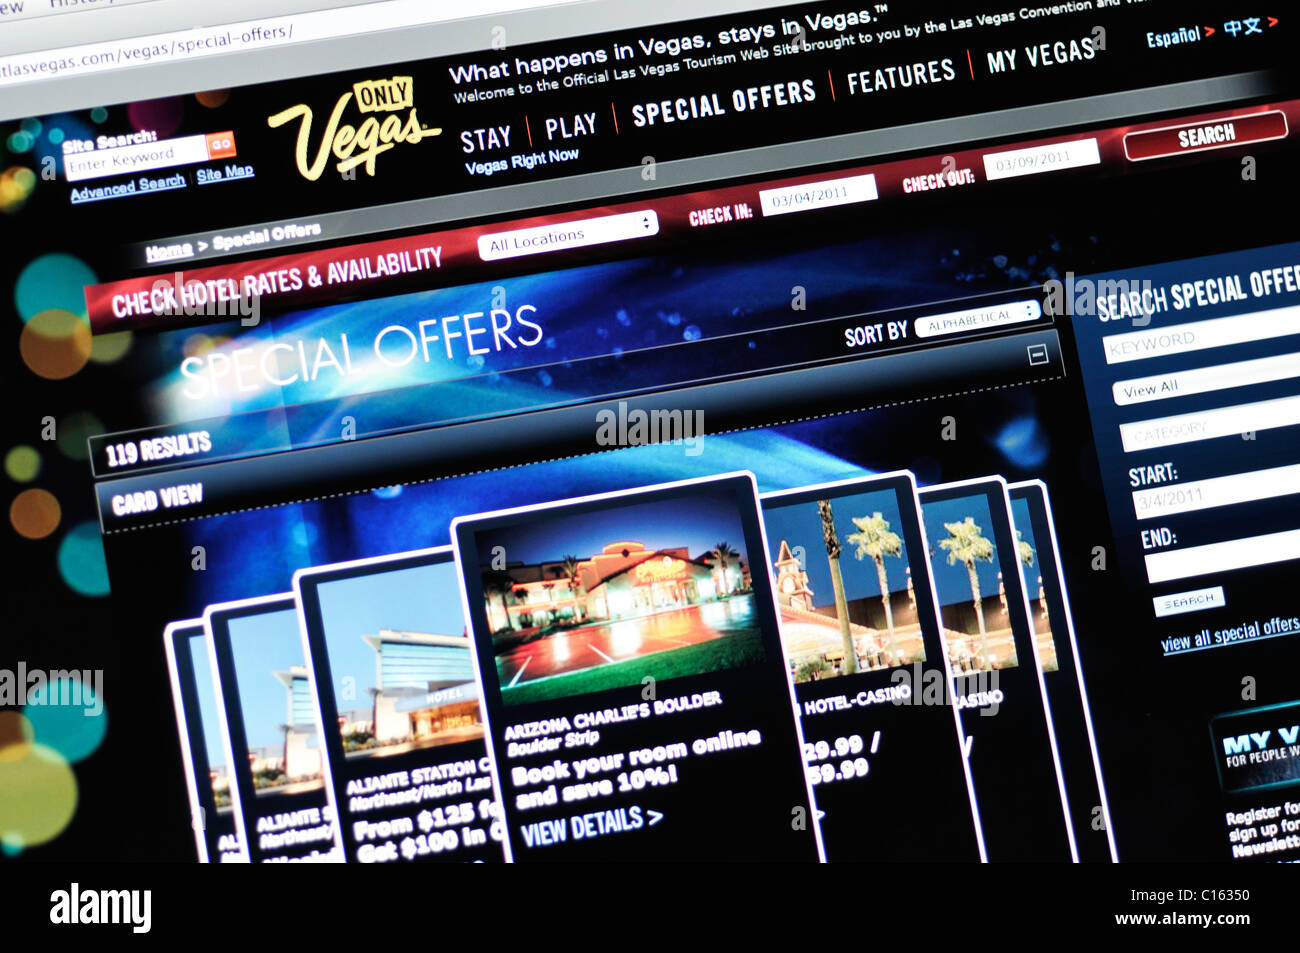 Las Vegas official tourism website - Stock Image